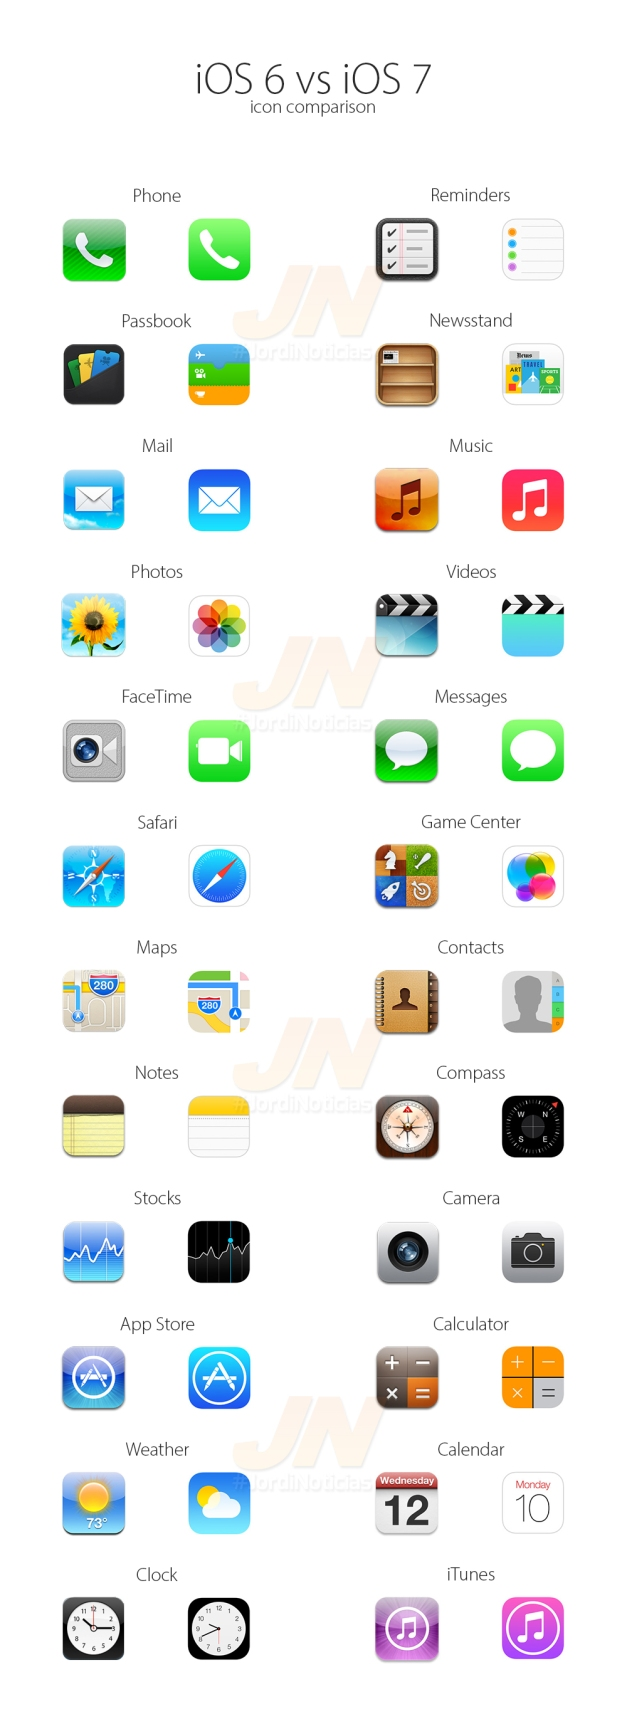 iOS-6-vs-iOS-7-iconsJN